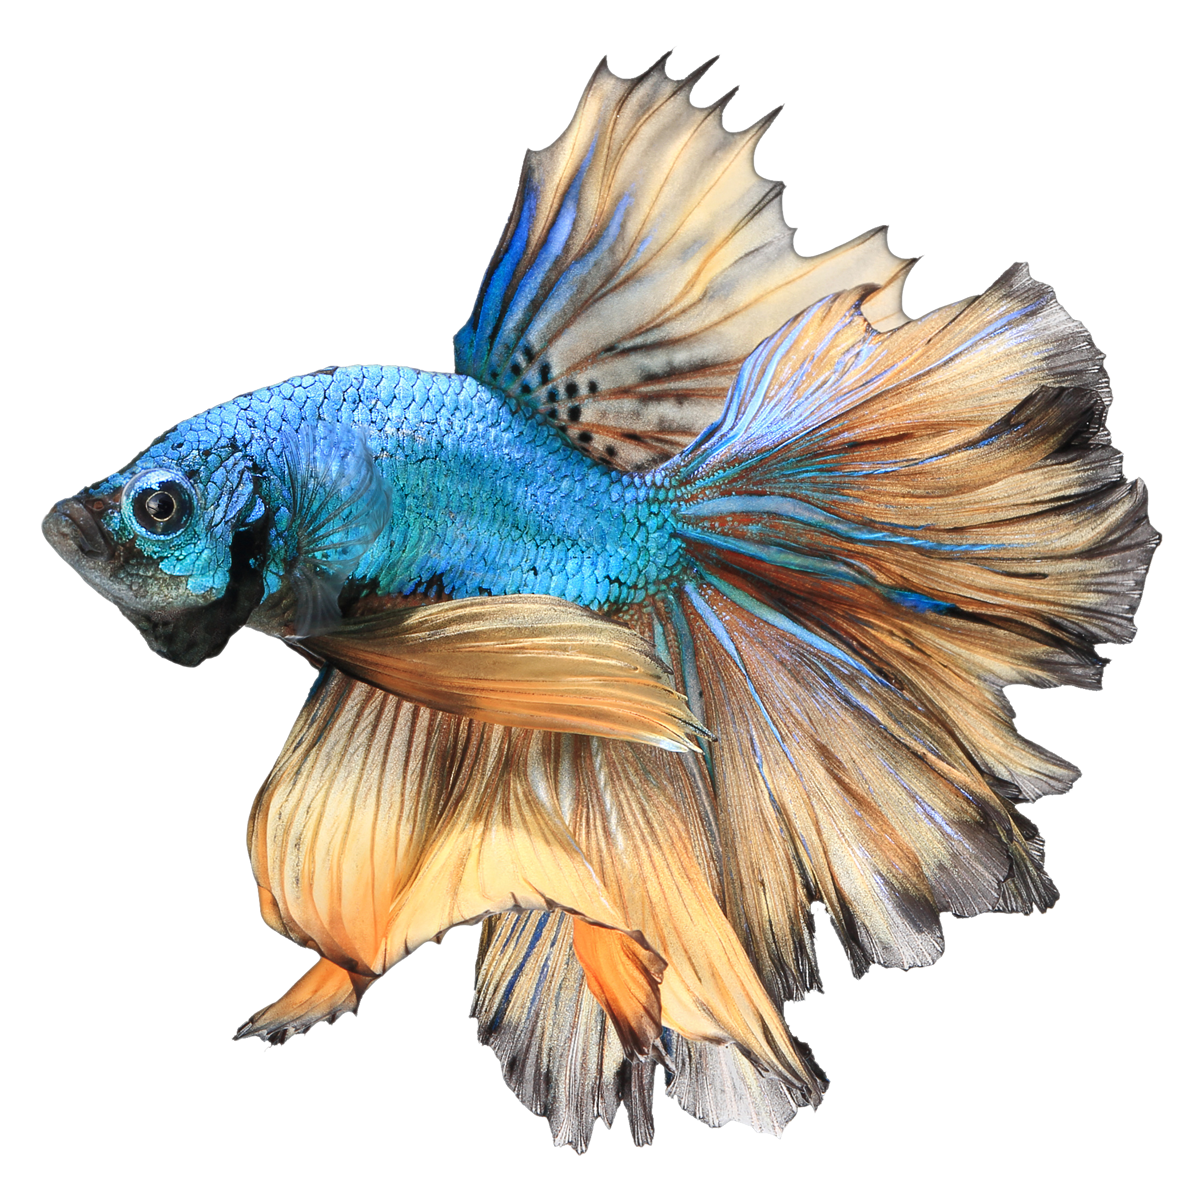 Betta fish in a bowl clipart graphic royalty free Blue Paradise Male Betta | GoBetta graphic royalty free